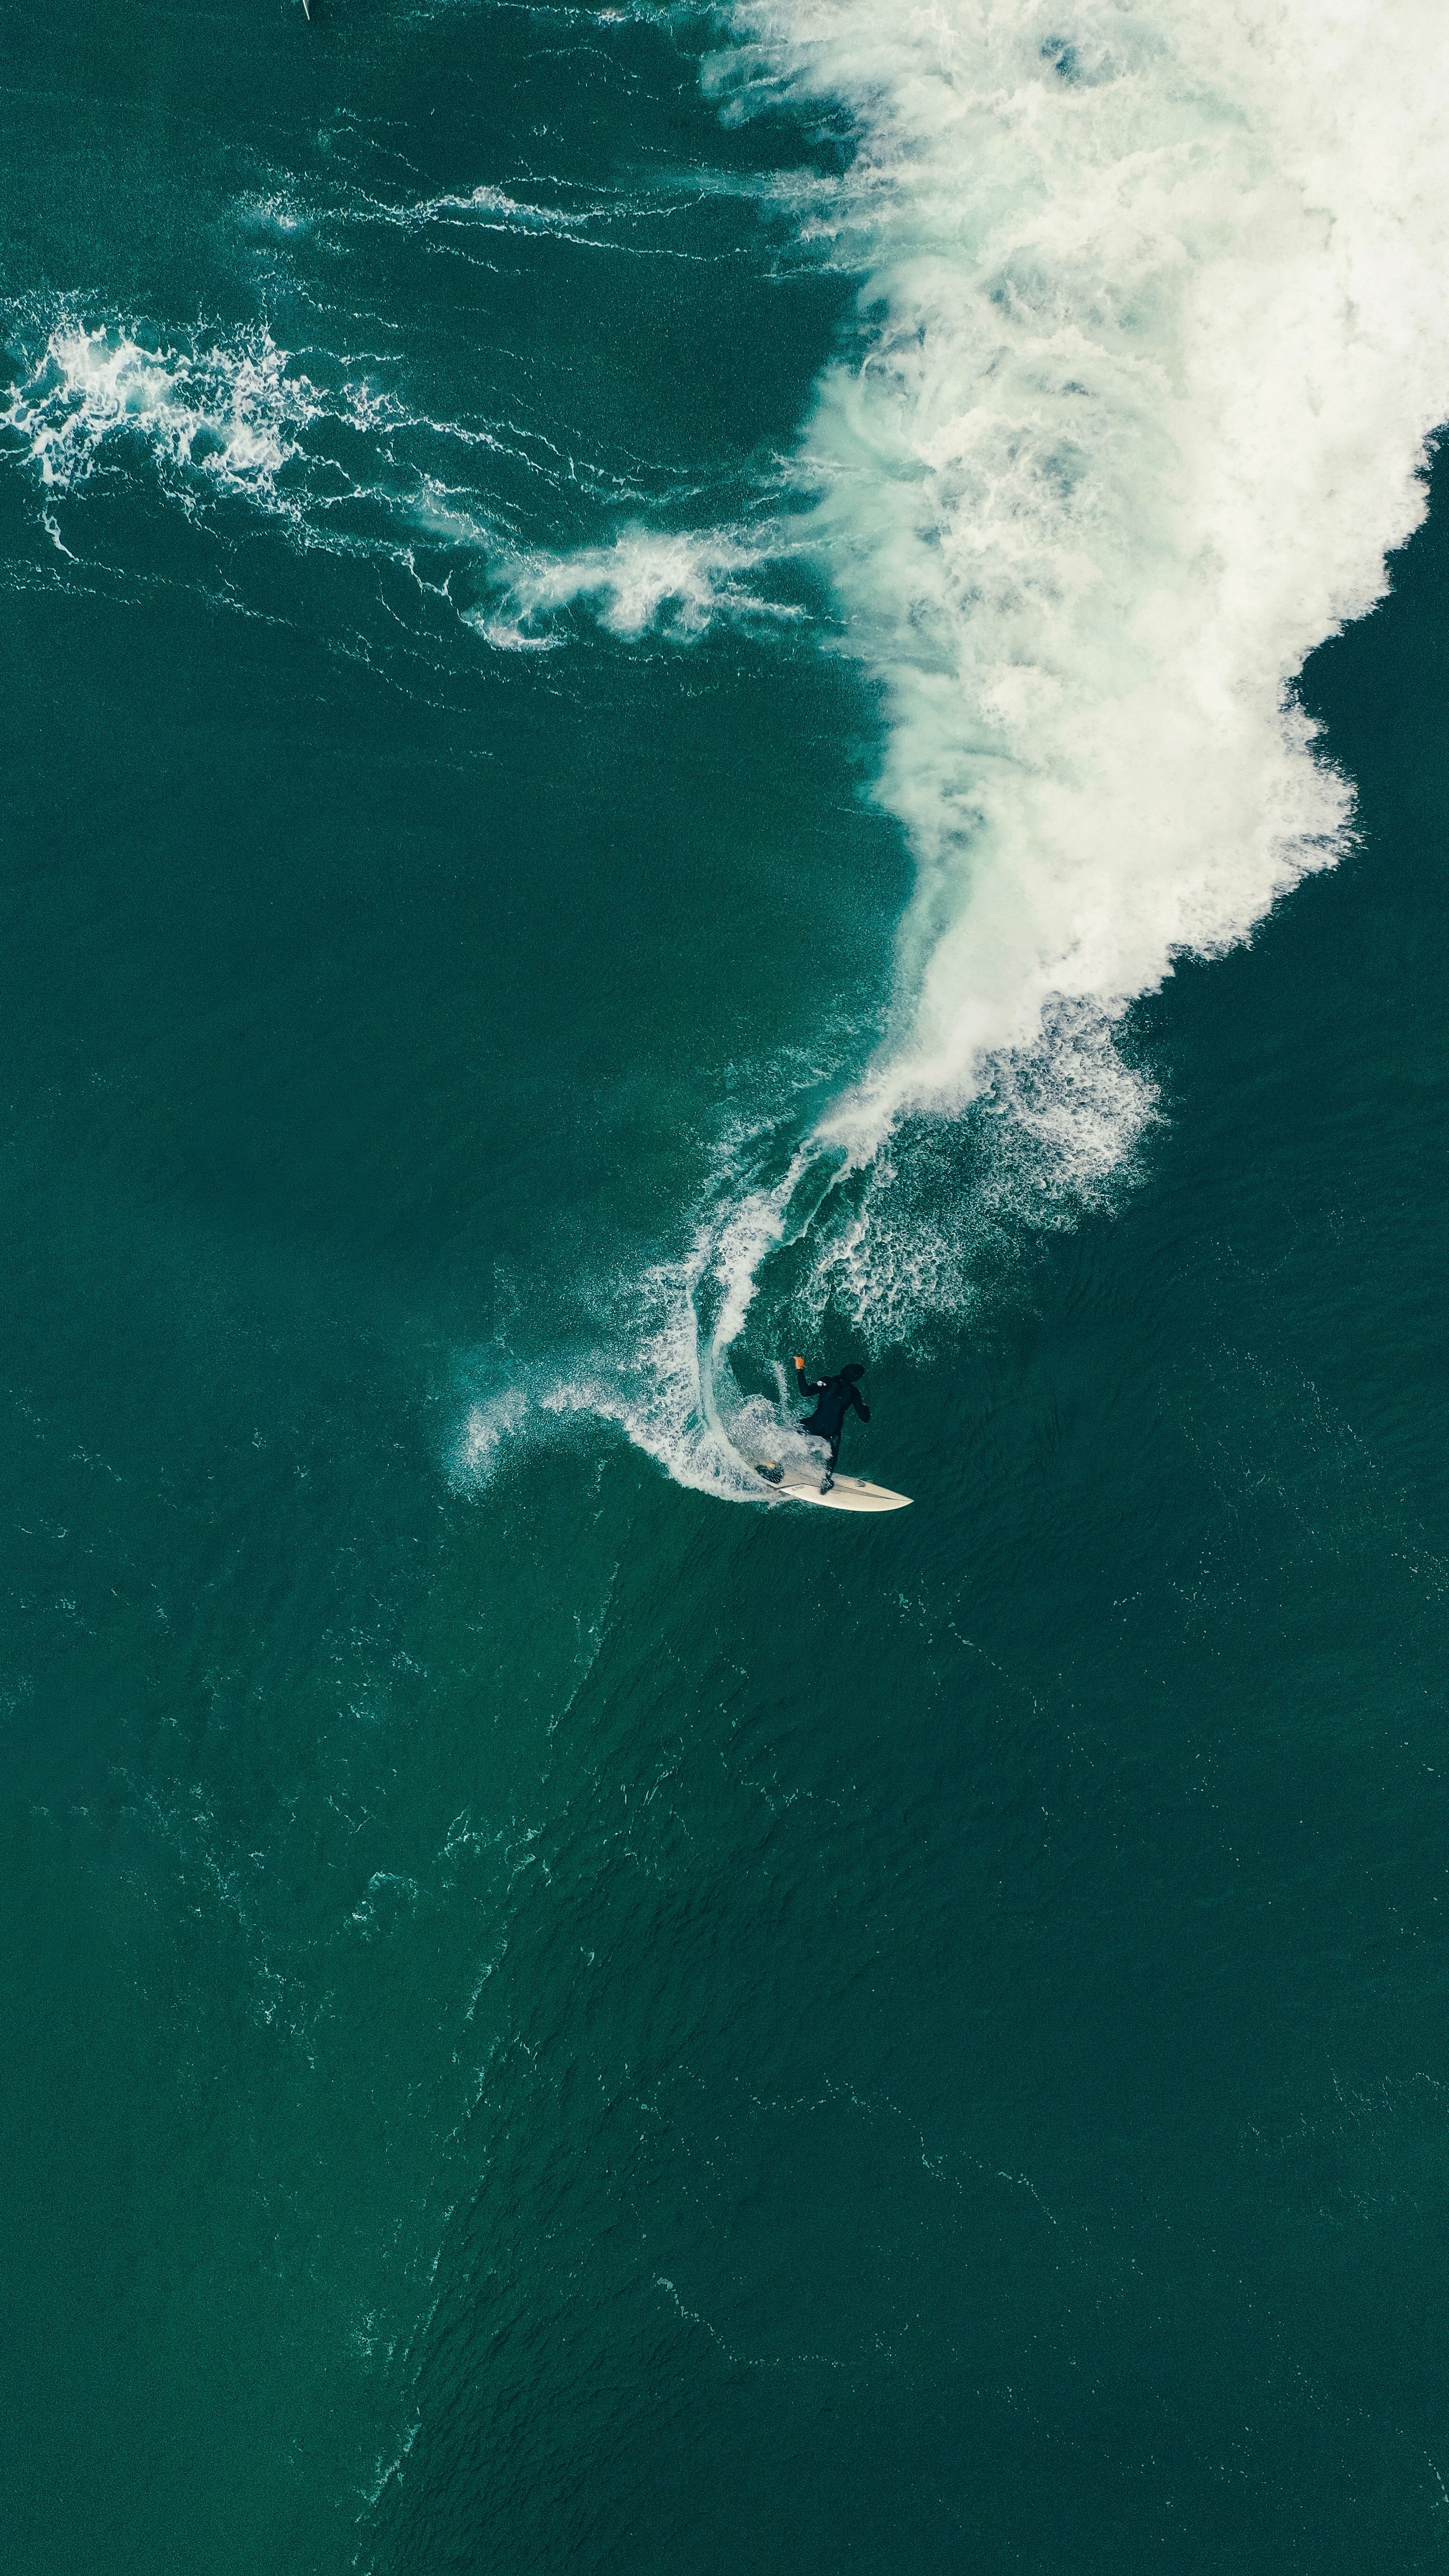 79841 download wallpaper Sports, Serfing, Surfer, Wave, Sea, View From Above screensavers and pictures for free